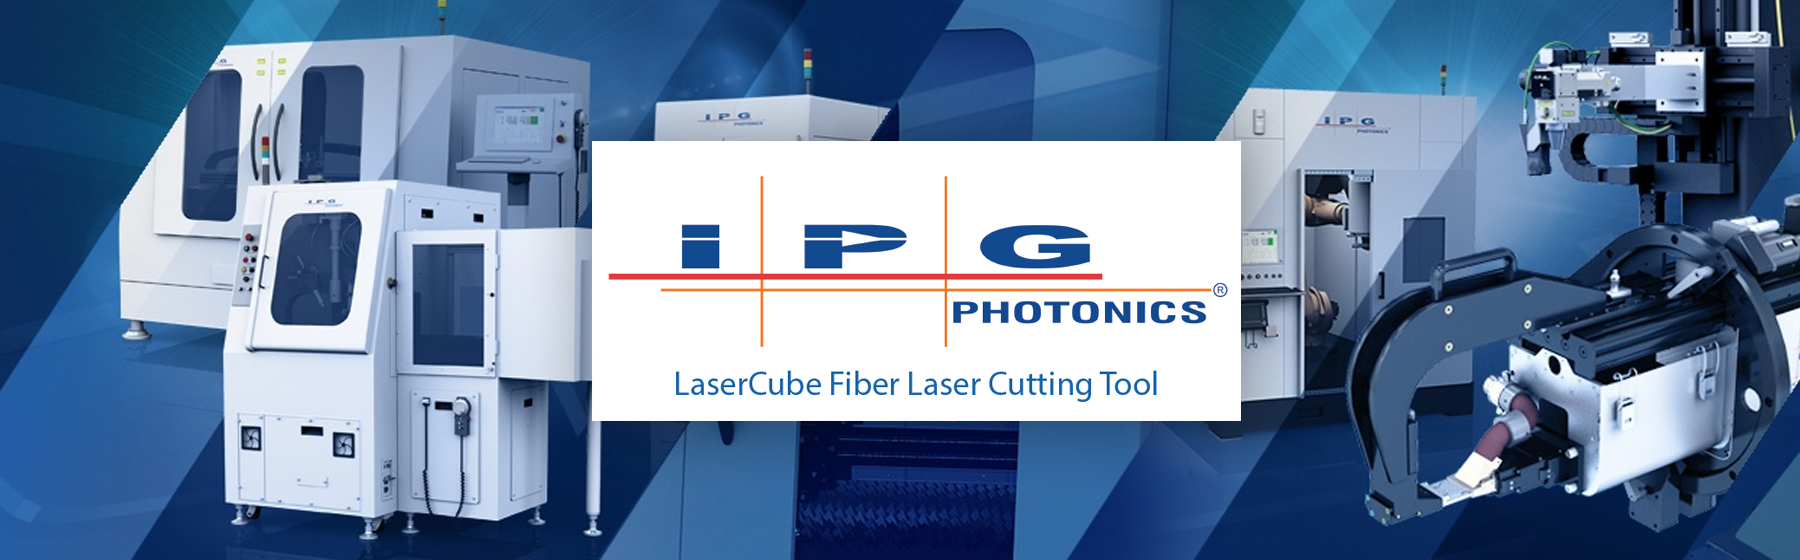 IPG Laser Cube Mushield